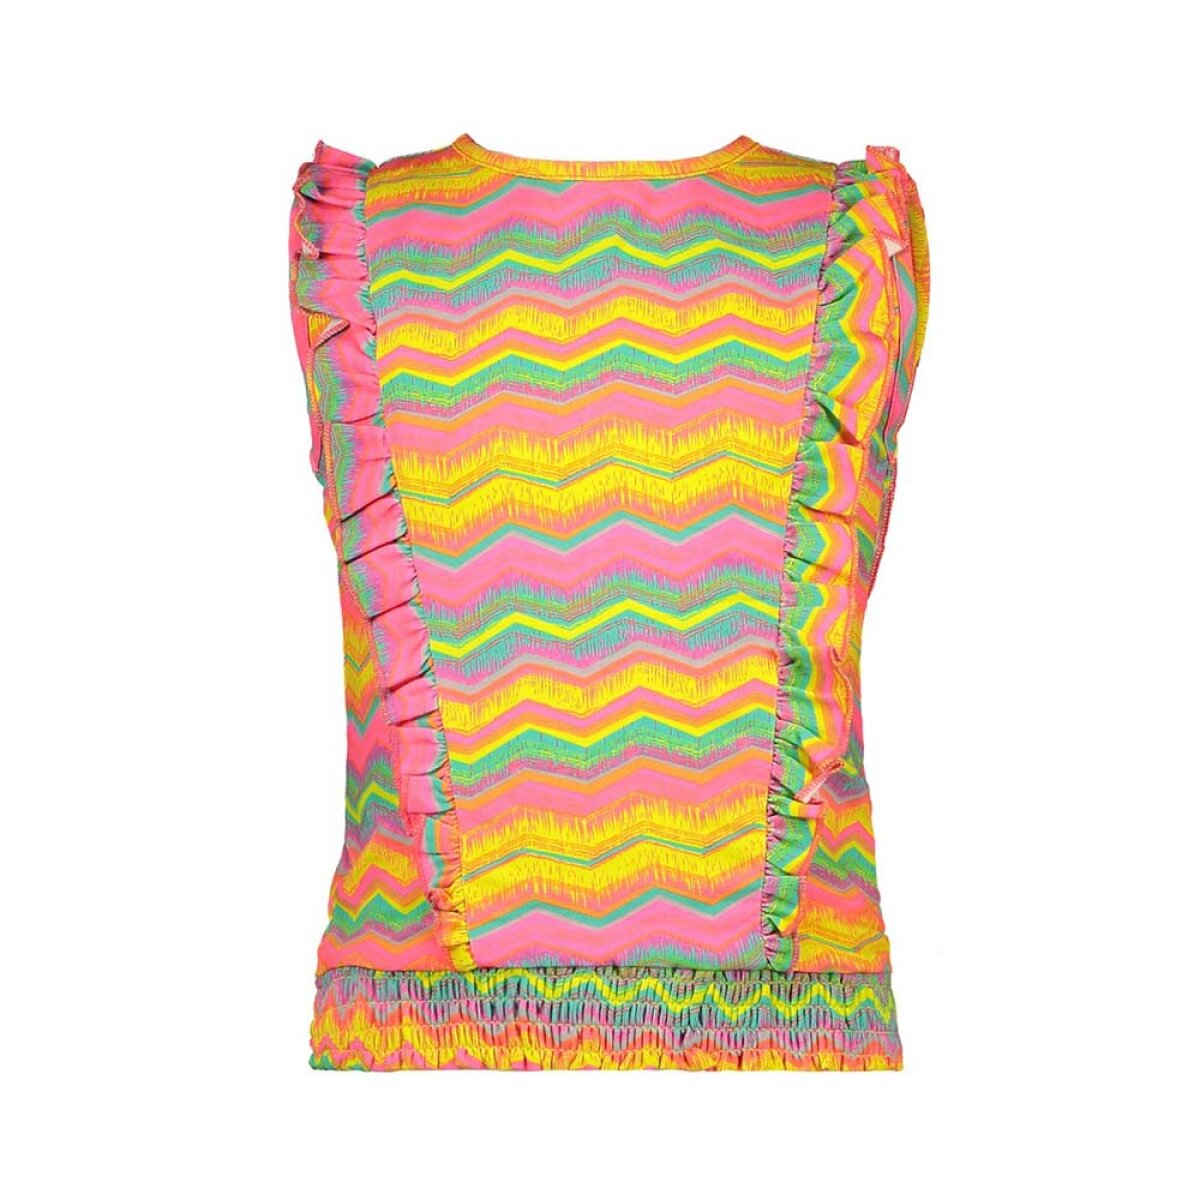 Kidz Art meisjes shirt K003-5460/932 multicolor